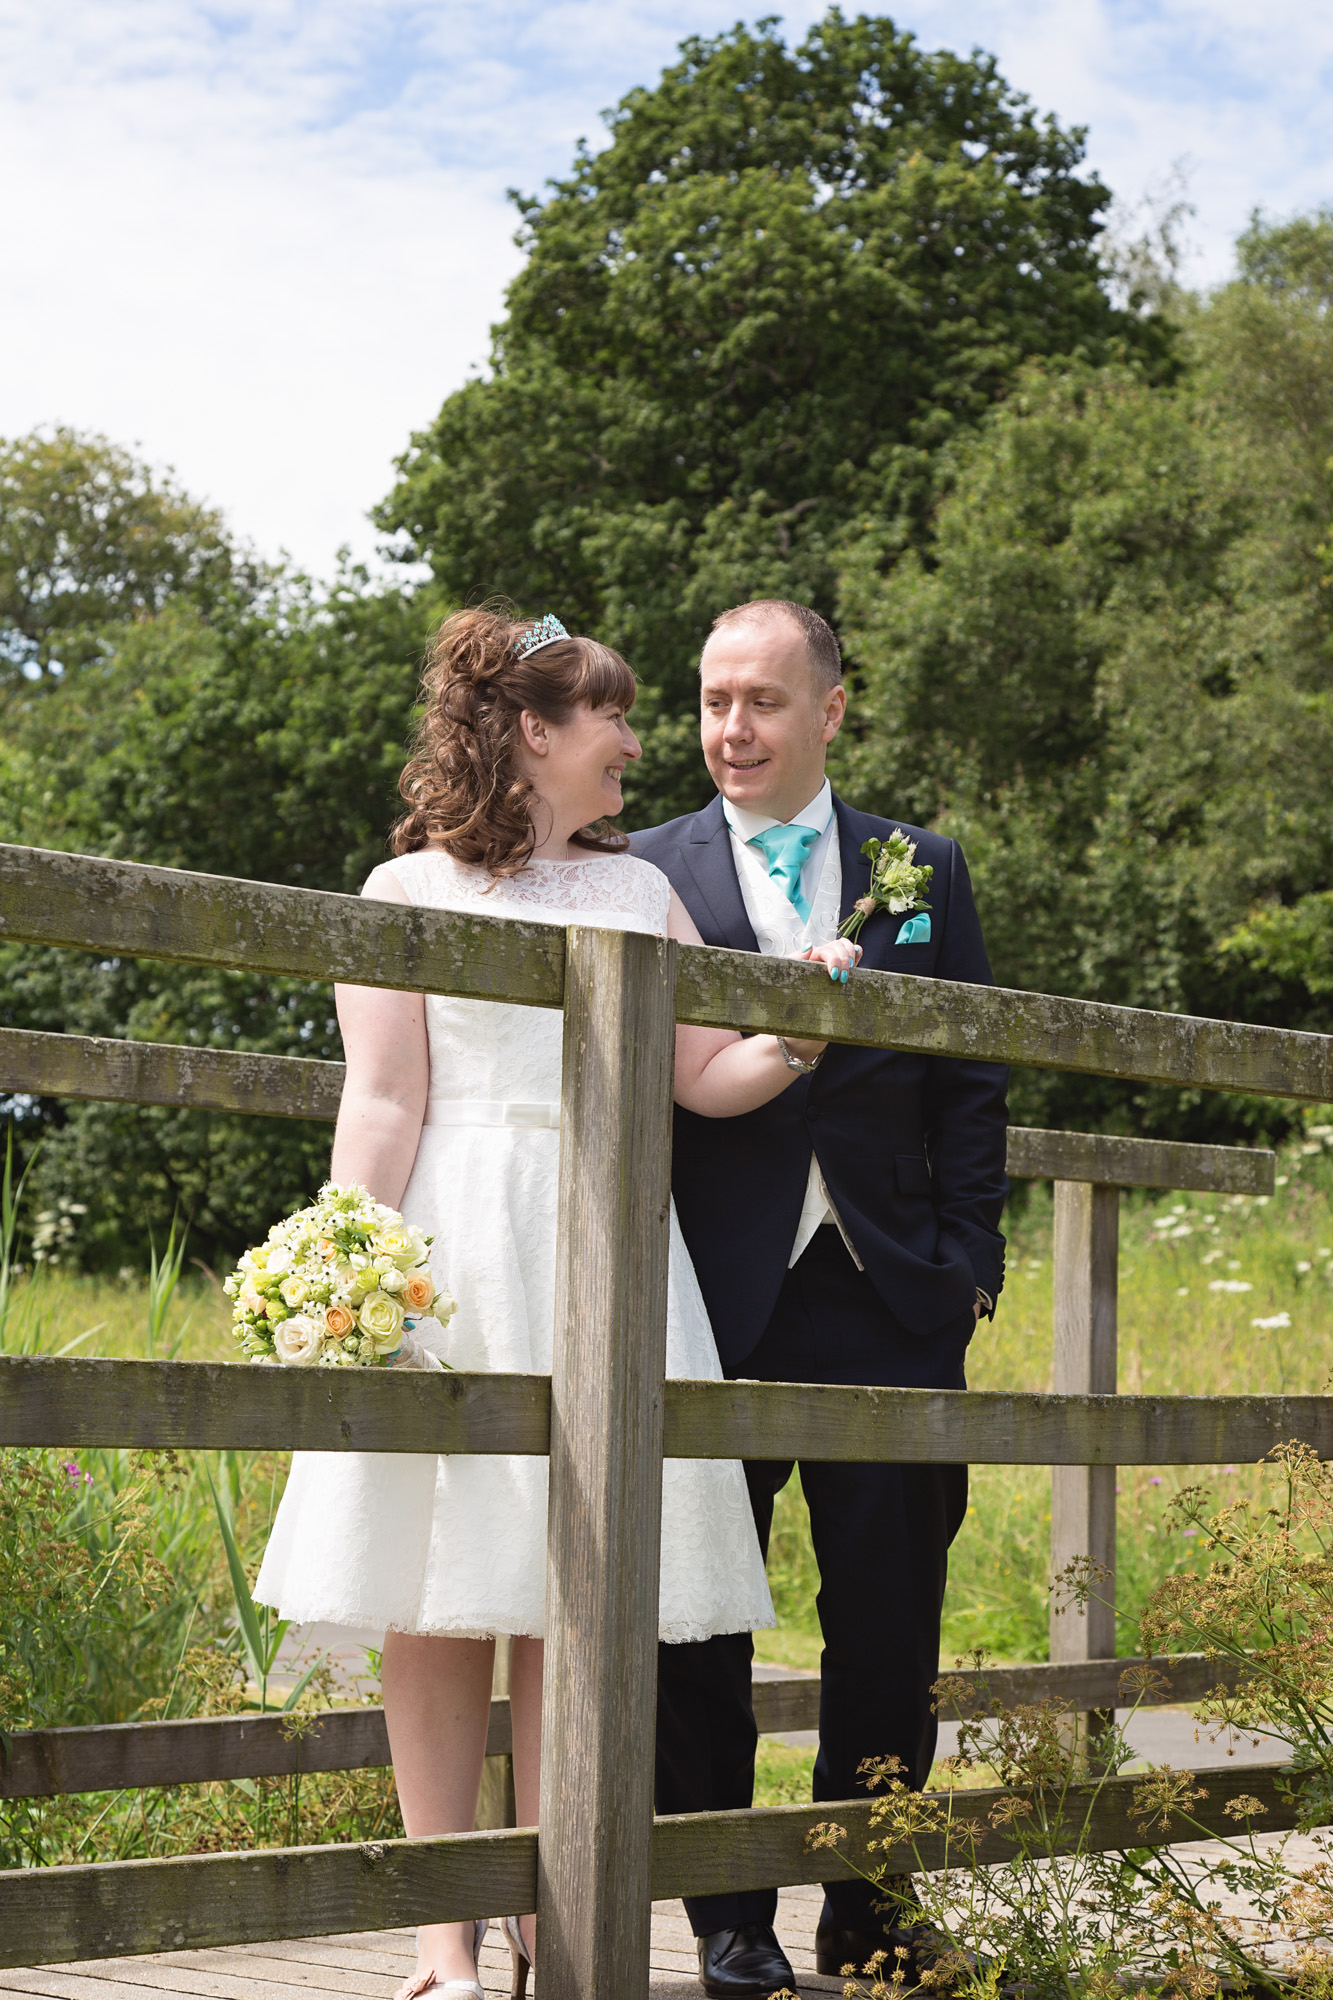 wedding photographer penallta registry offices, Caerphilly